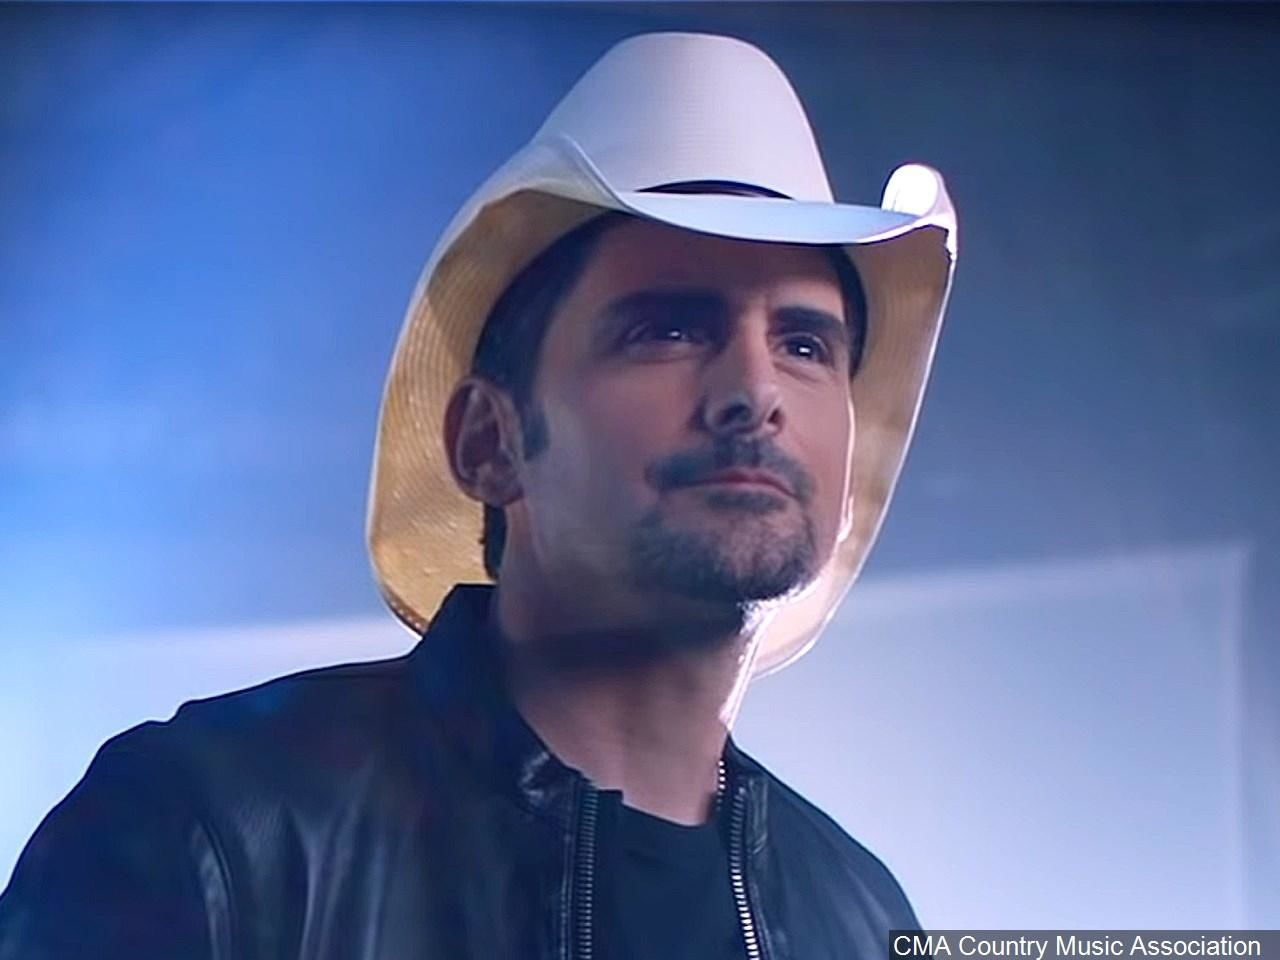 Brad Paisley breaks ground on free grocery shop in Nashville (Photo: CMA Country Music Association)